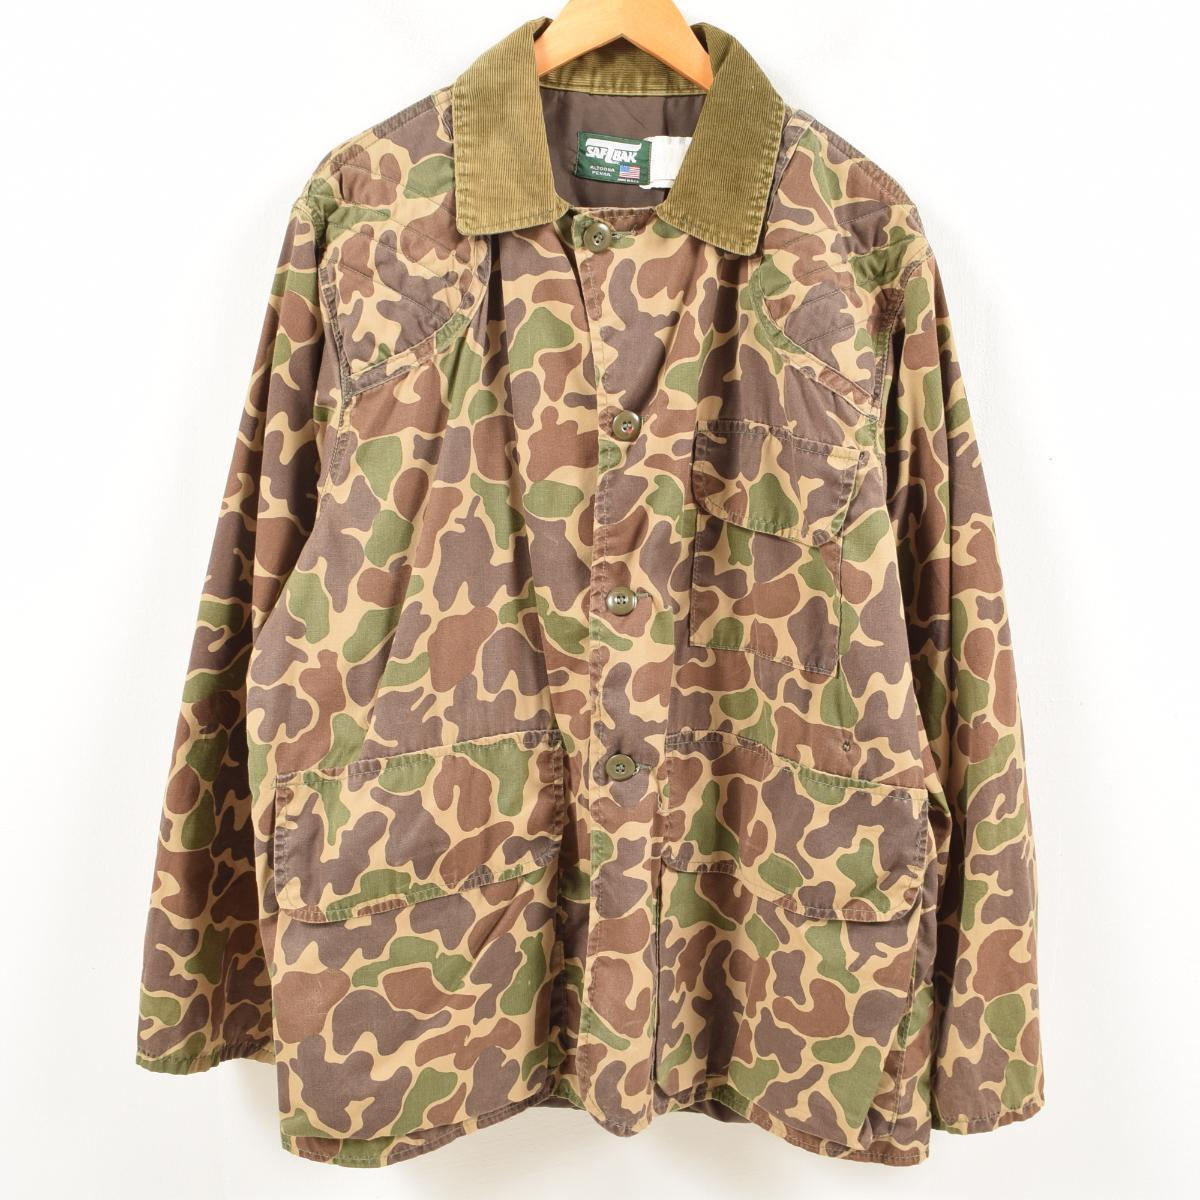 984b1f2b6310c Men XL vintage /wal1438 in the 80s made in SAFTBAK duck hunter duck  camouflage hunting ...